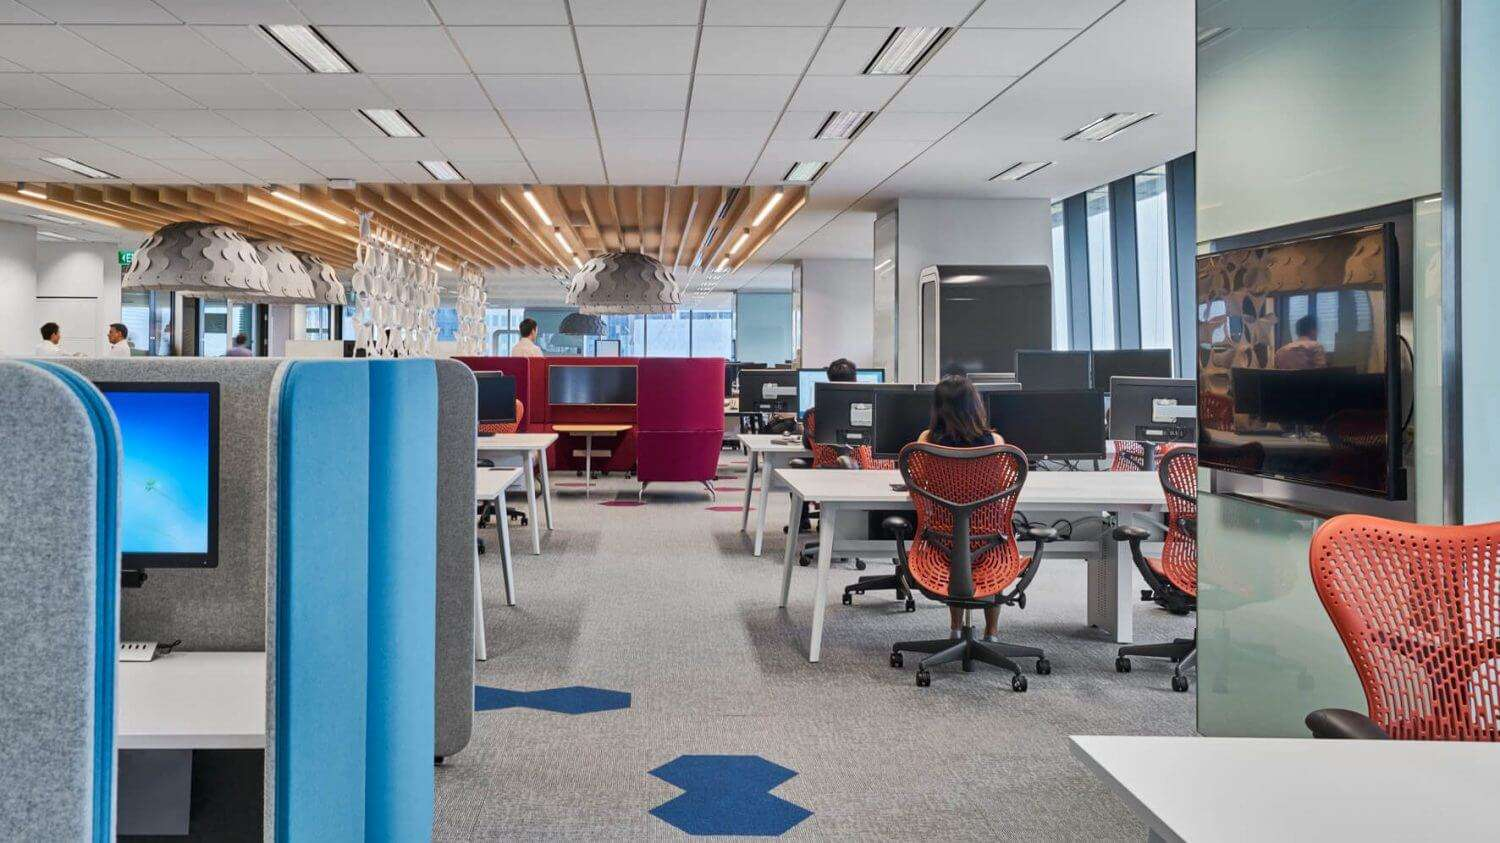 The Importance of Wellness Design in the Workplace